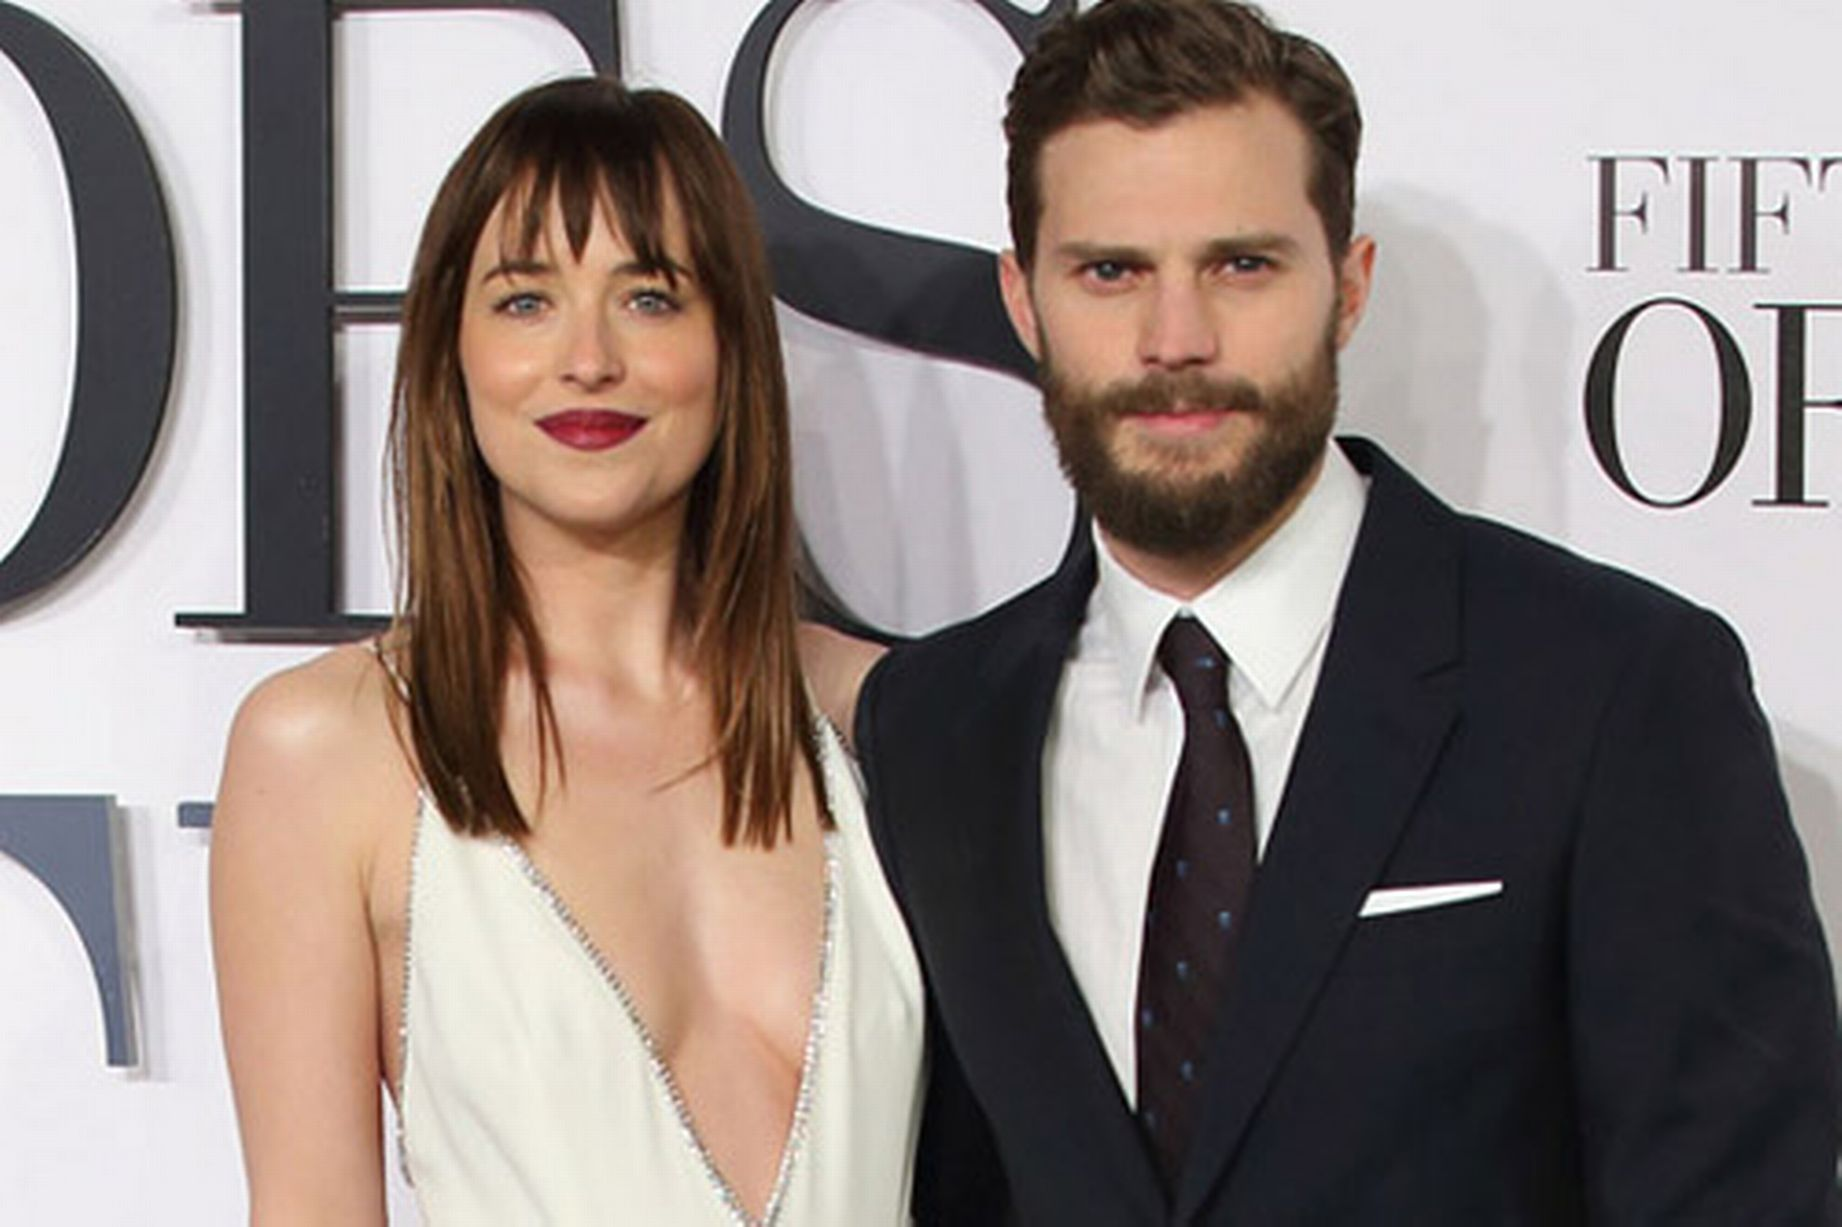 Jamie-Dornan-and-Dakota-Johnson-attends-the-UK-Premiere-of-Fifty-Shades-Of-Grey